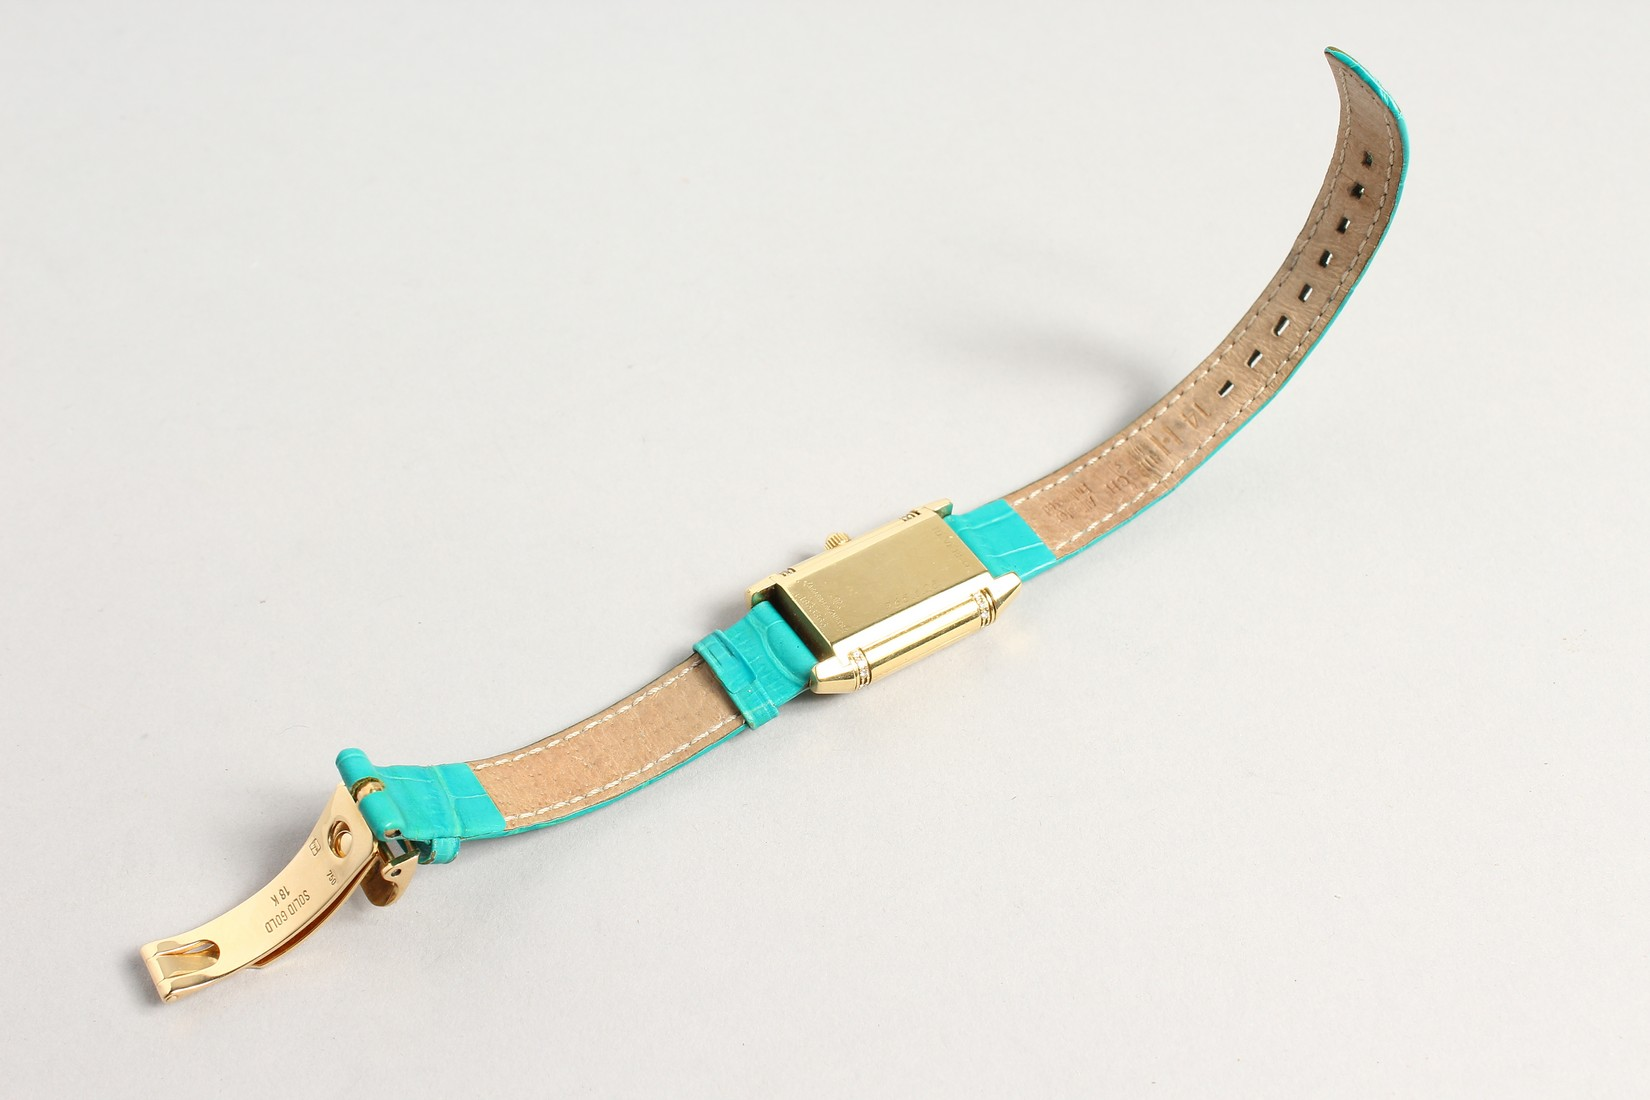 A VERY GOOD 18CT. GOLD AND DIAMOND JAGEUR LE COUTRE REVERSE WRISTWATCH, with a leather strap. - Image 3 of 8